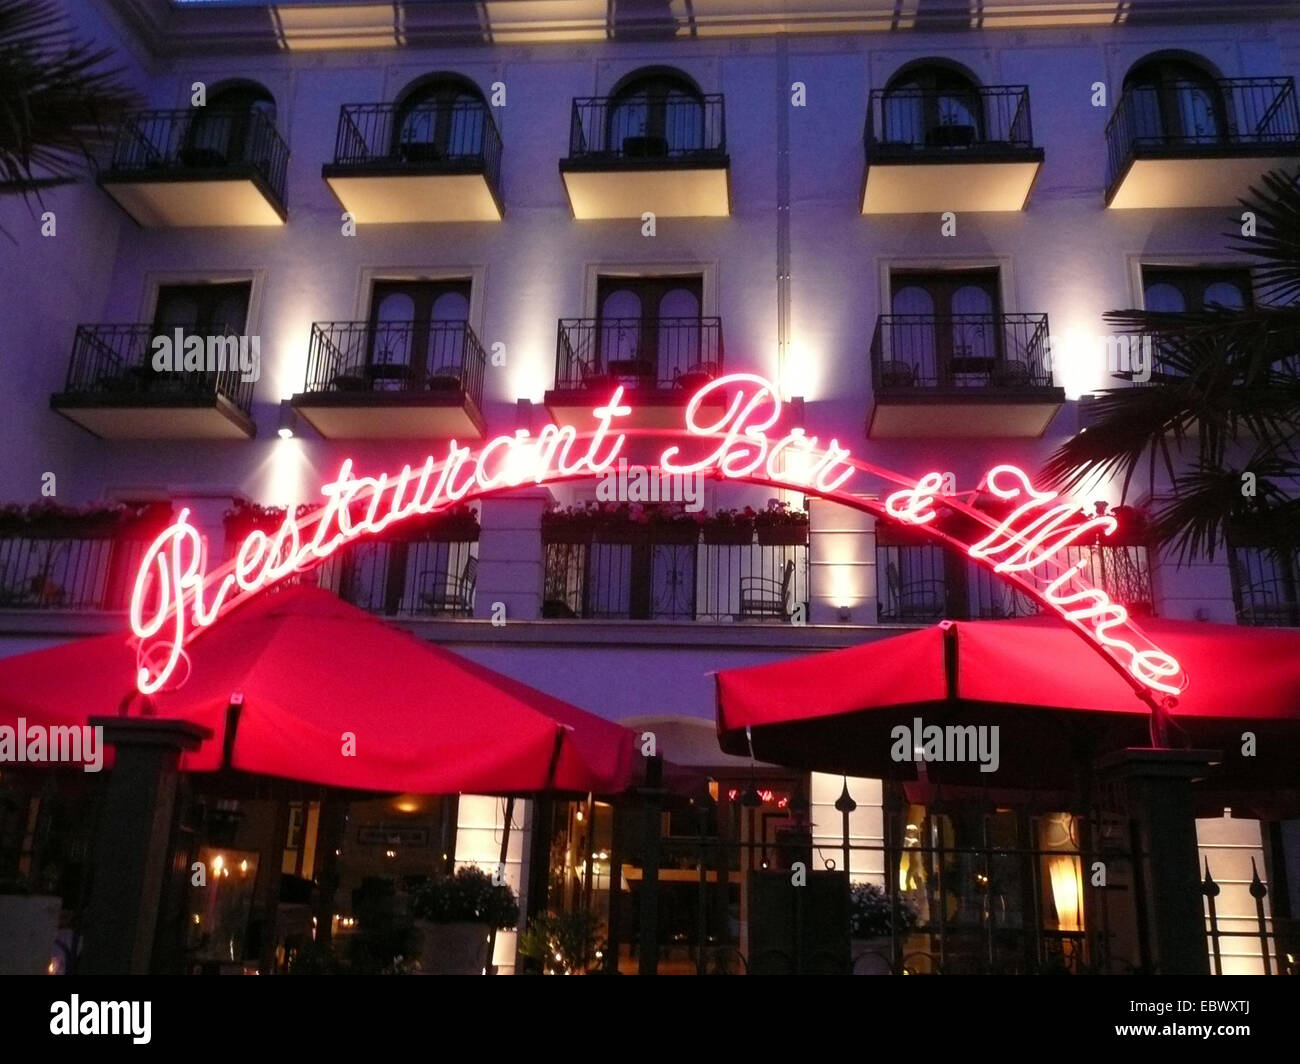 facade of a restaurant with evening illumination - Stock Image